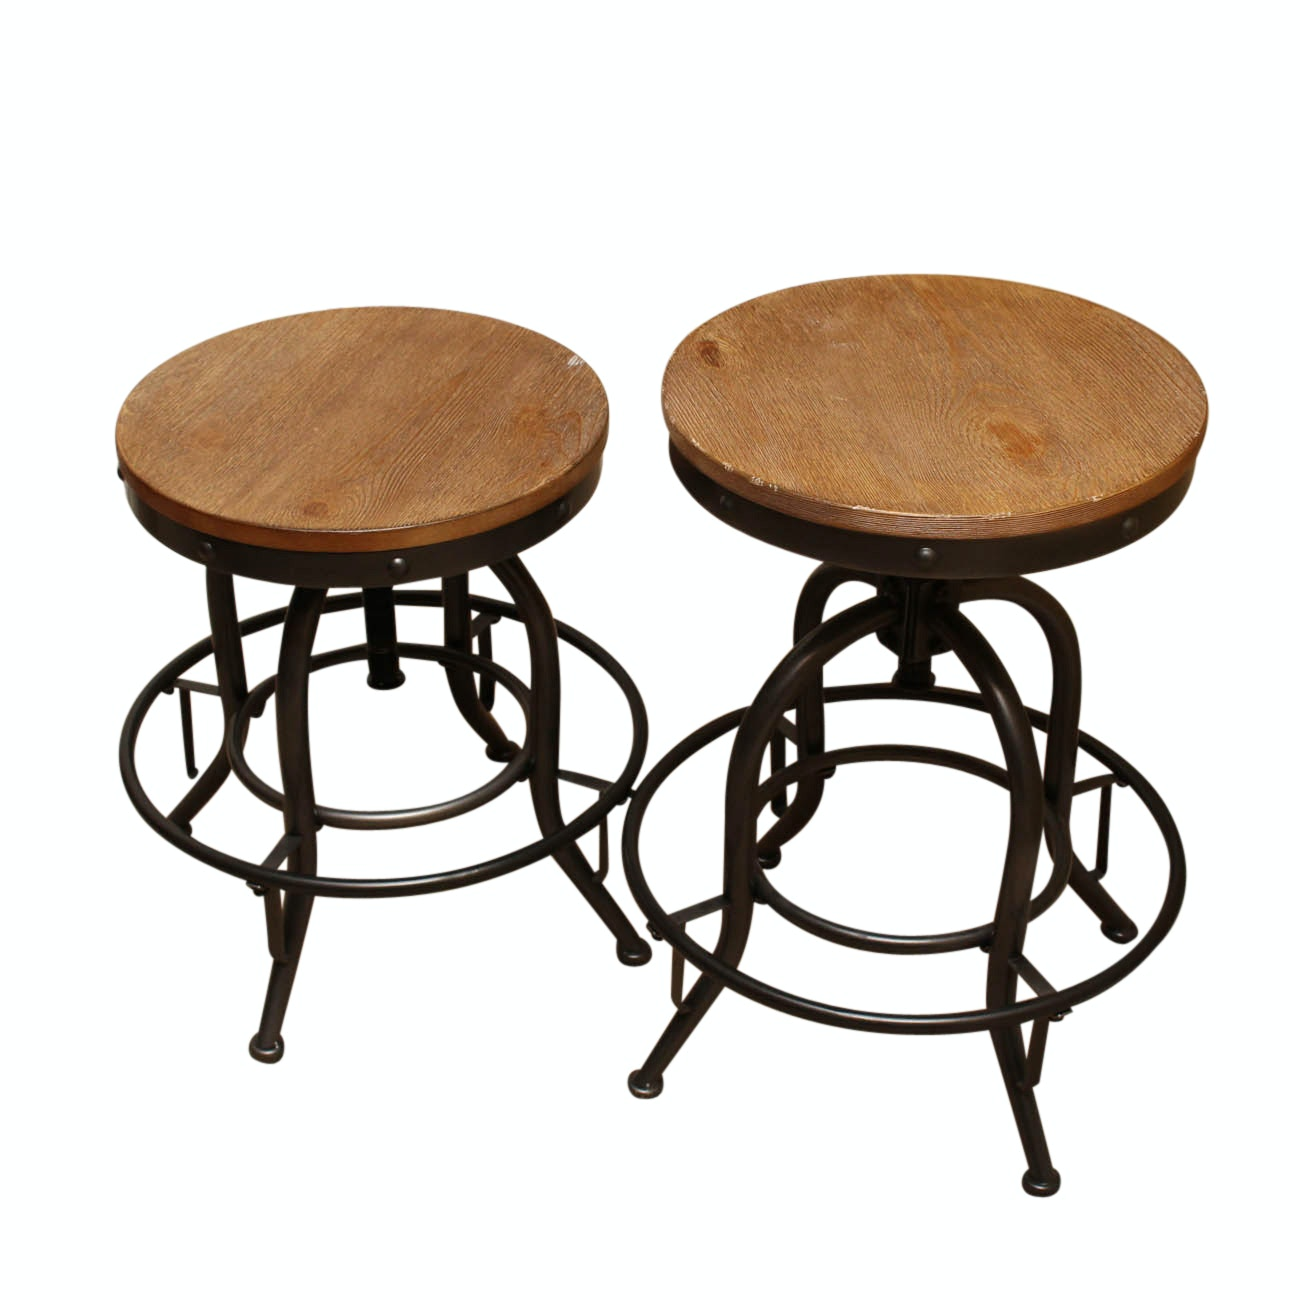 Pair of Ashley Furniture Adjustable Swivel Stools